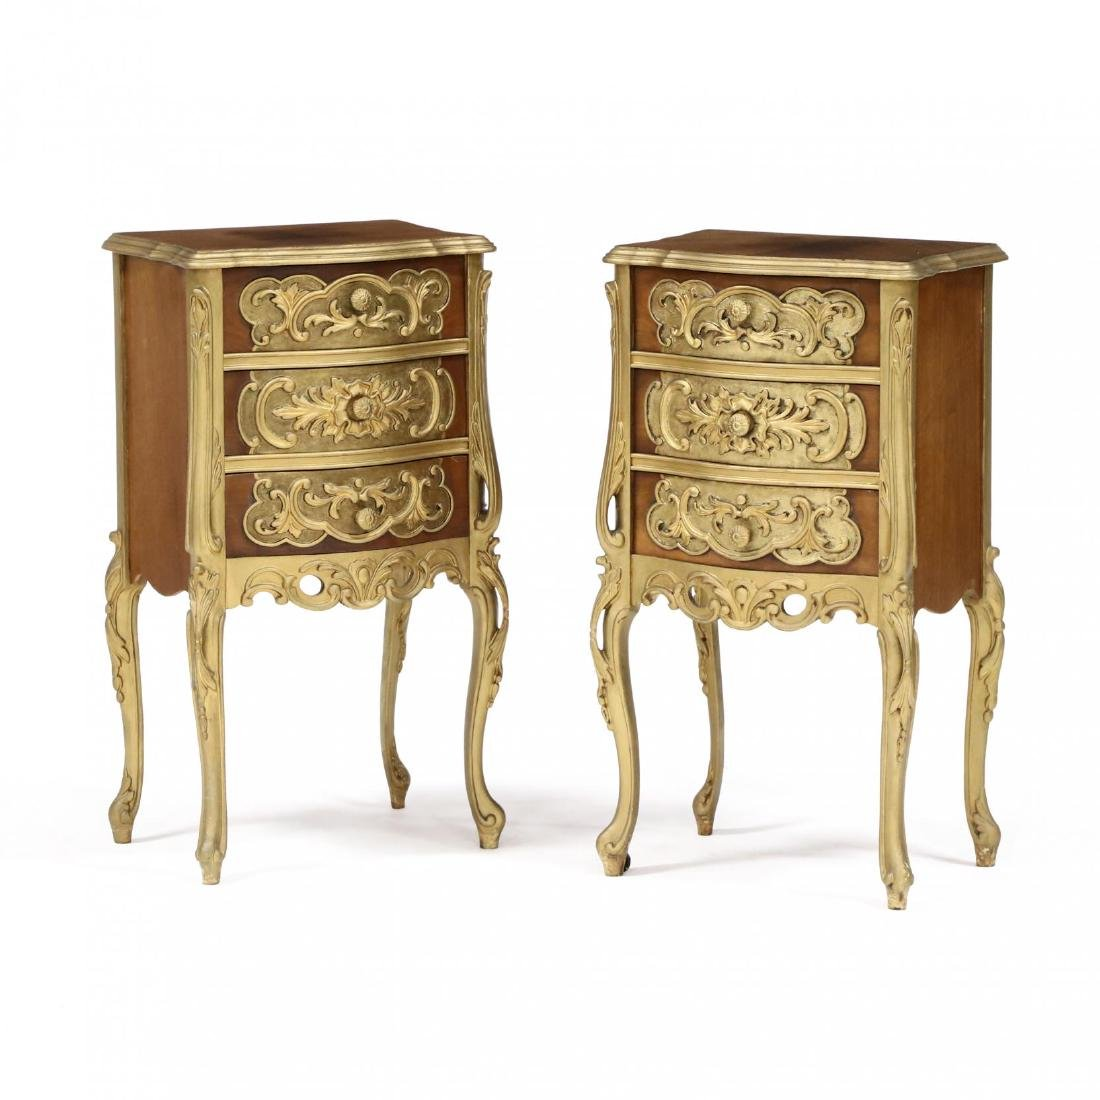 Pair of Italian Rococo Style Diminutive Chests